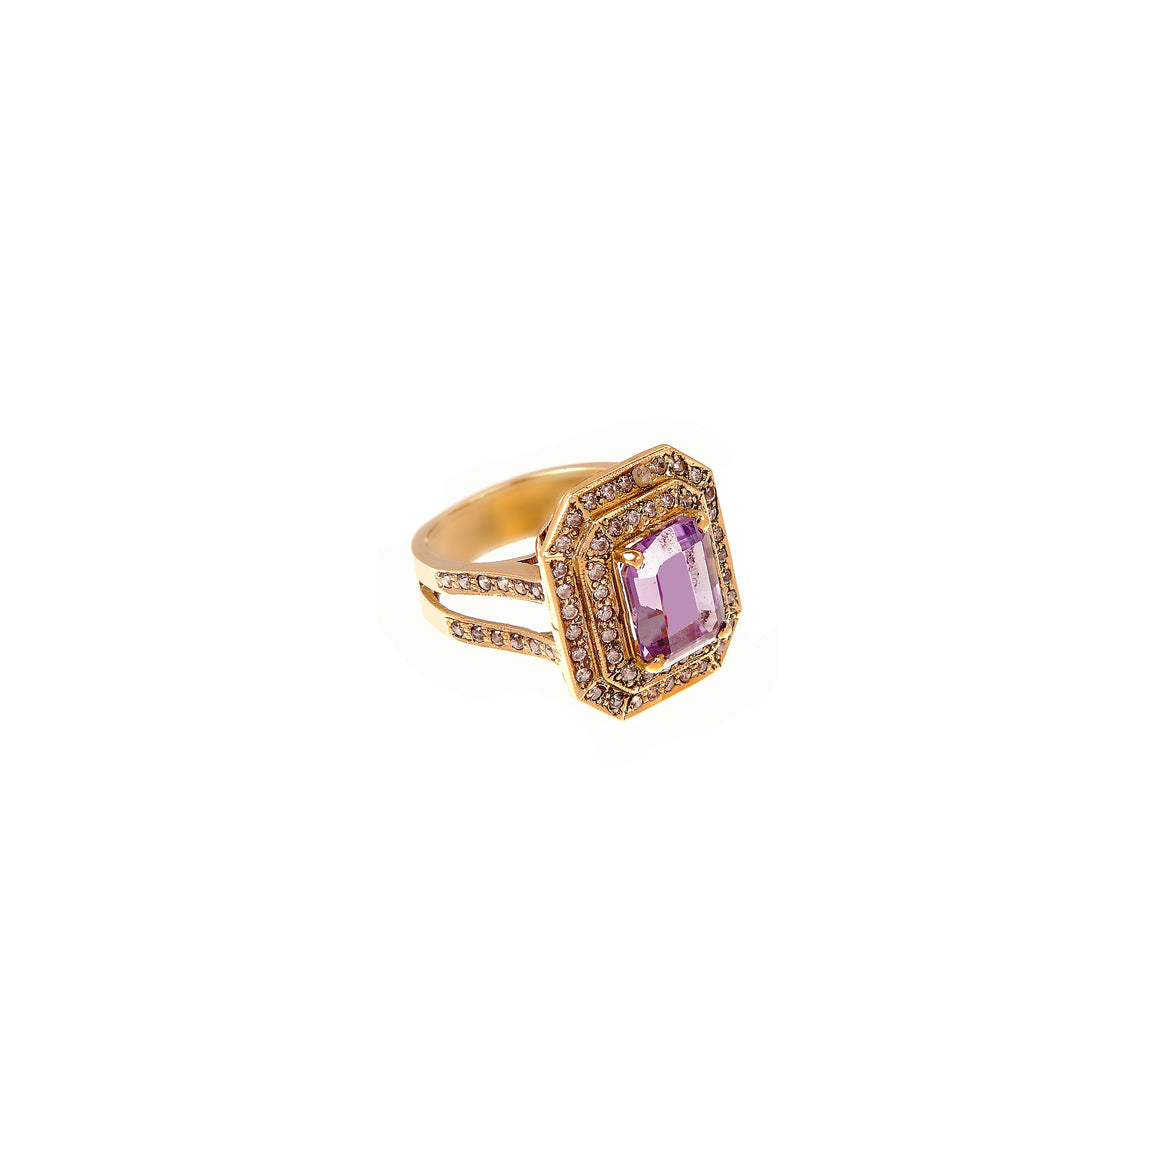 Striking Amethyst ring made in 22k gold